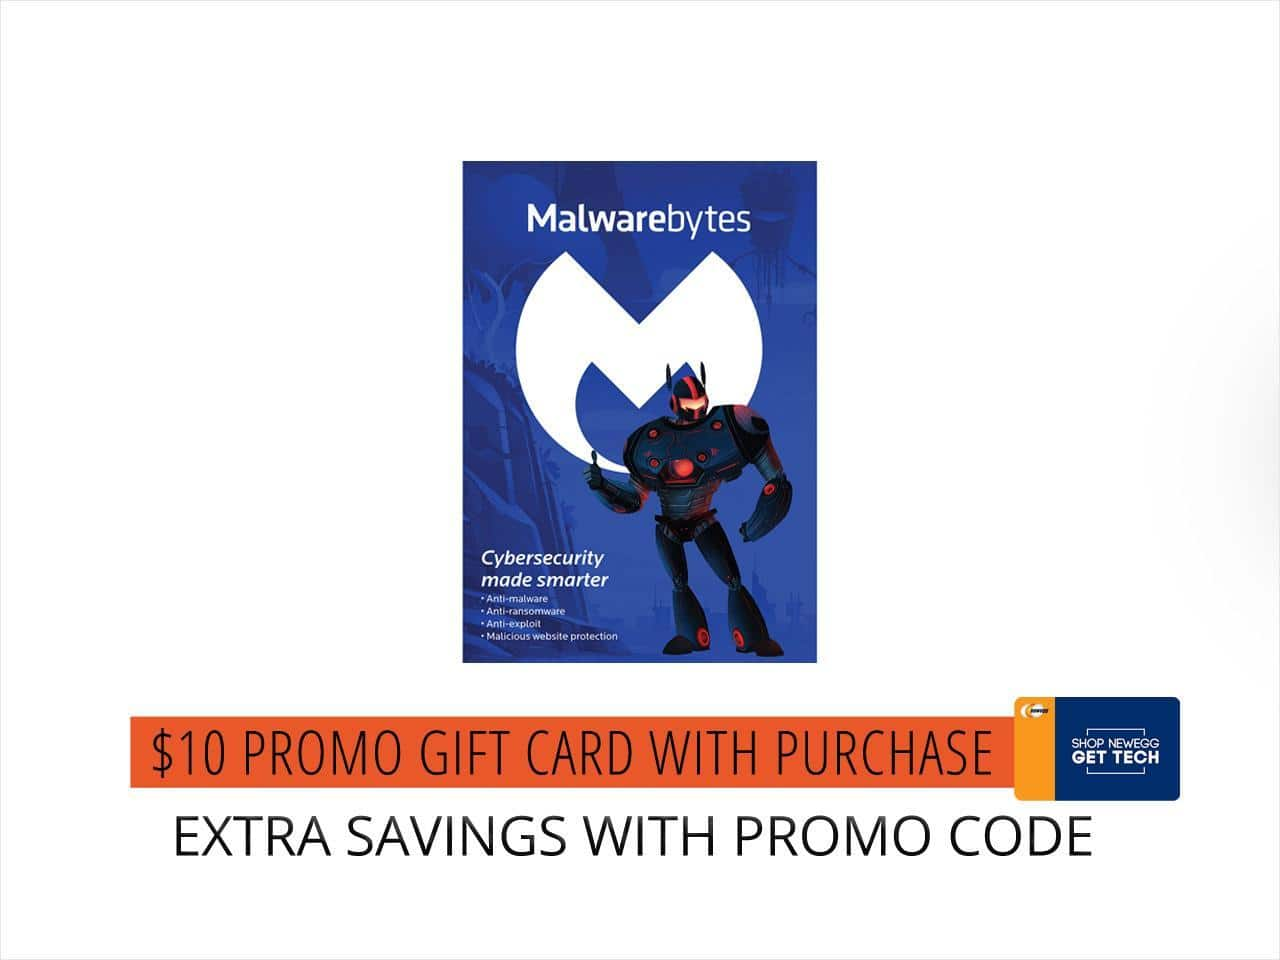 Malwarebytes Anti-Malware Premium 1 YR / 3 PC - Download  + $10 Newegg GC for $20